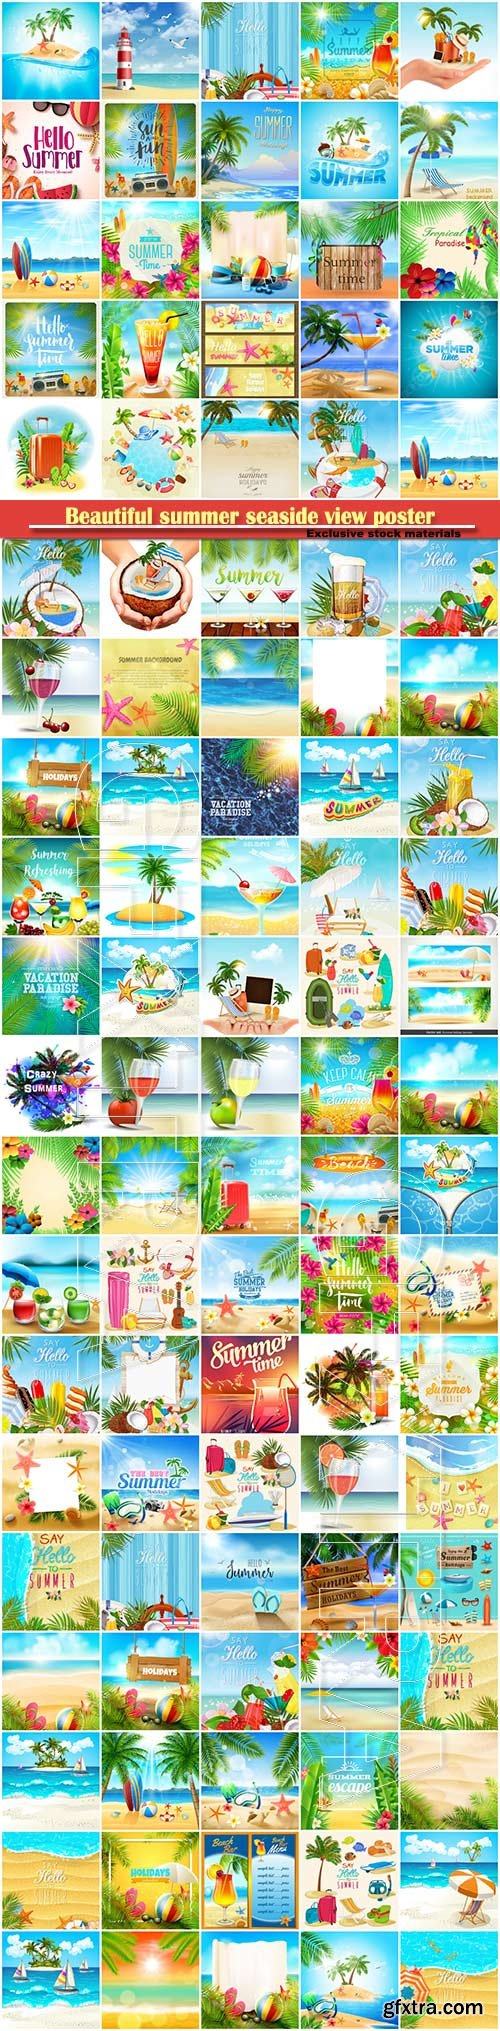 Beautiful summer seaside view poster, tropical sea, travel background vector illustration # 2